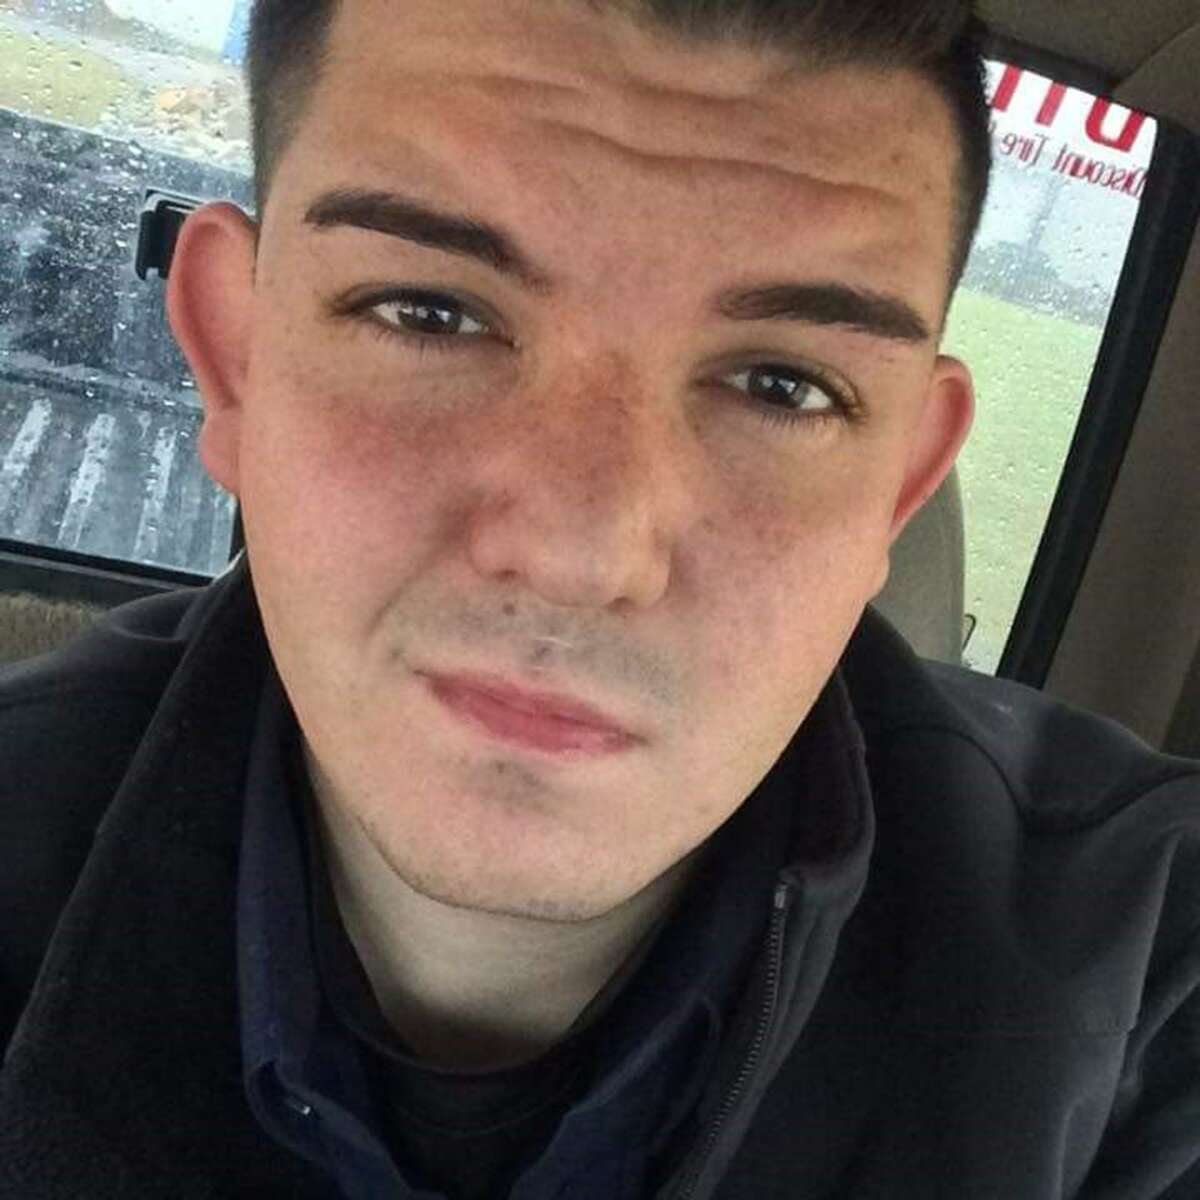 James Miranda, 23, of Mount Pleasant, died in the fire July 20 at Iconic Village Apartments in San Marcos. He was an assistant manager at Discount Tire.